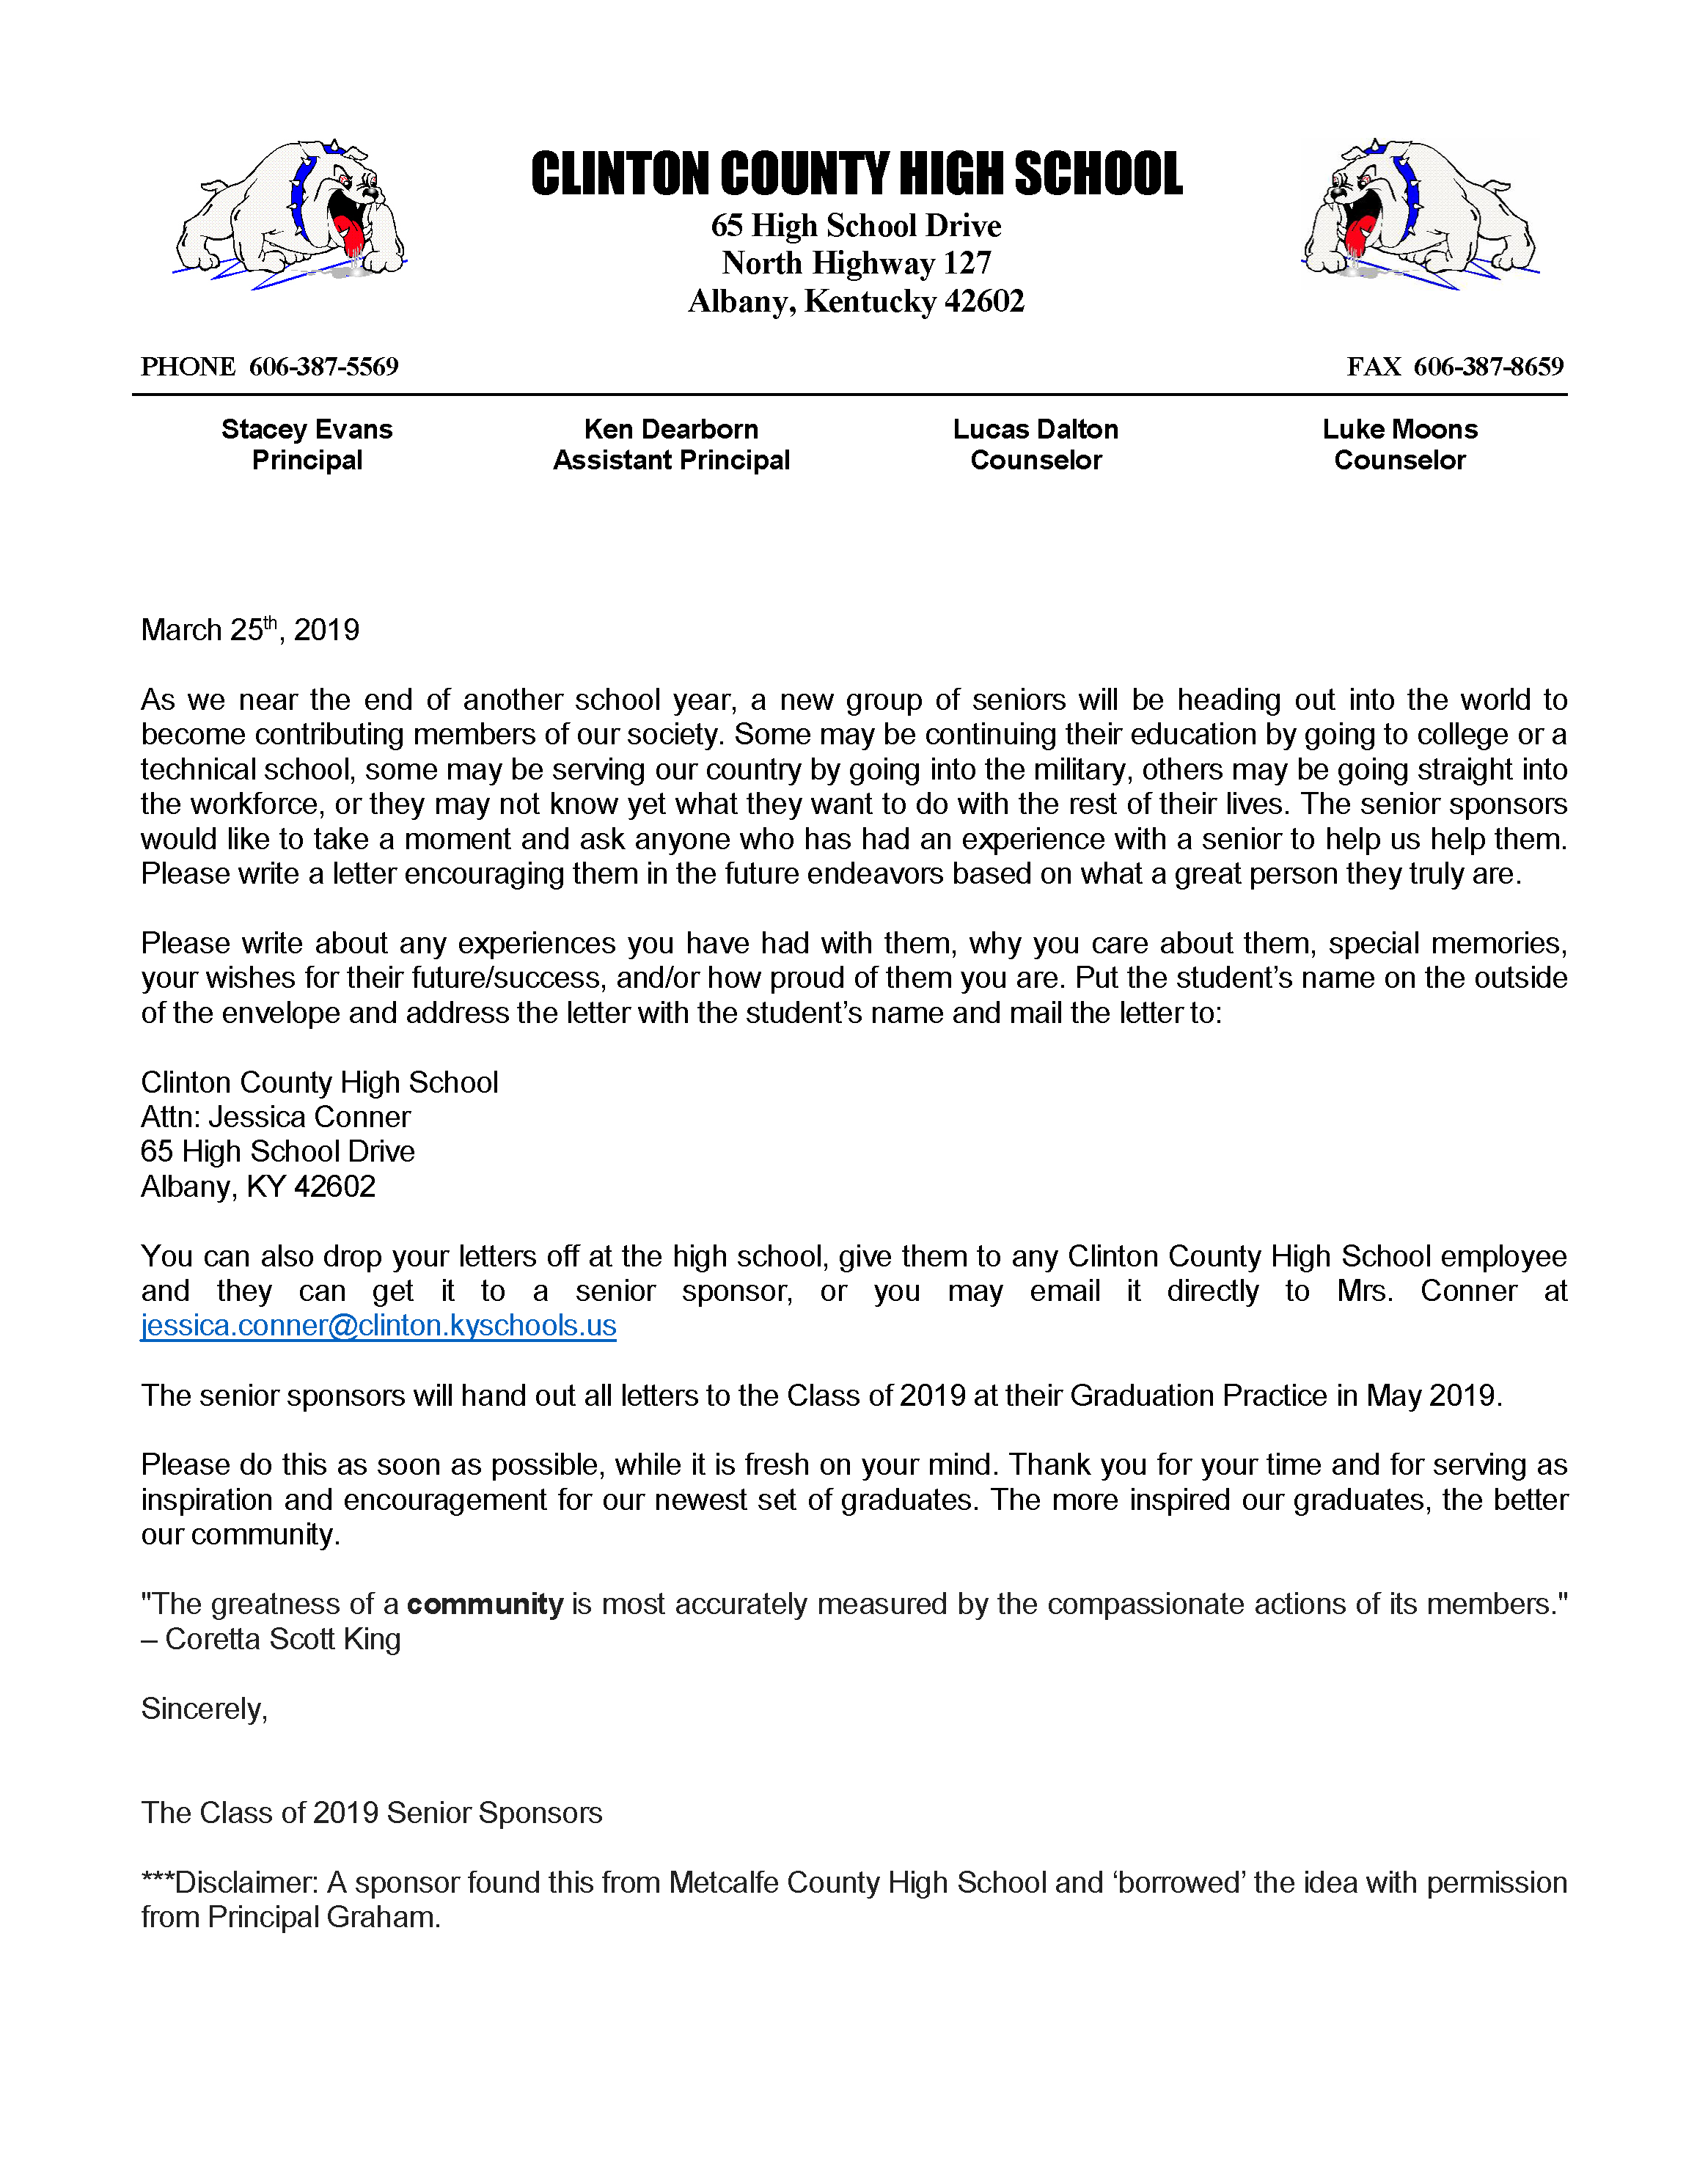 Would you like to help make graduation extra special this year? Read this letter from the Class of 2019 Senior Sponsors to find out how!